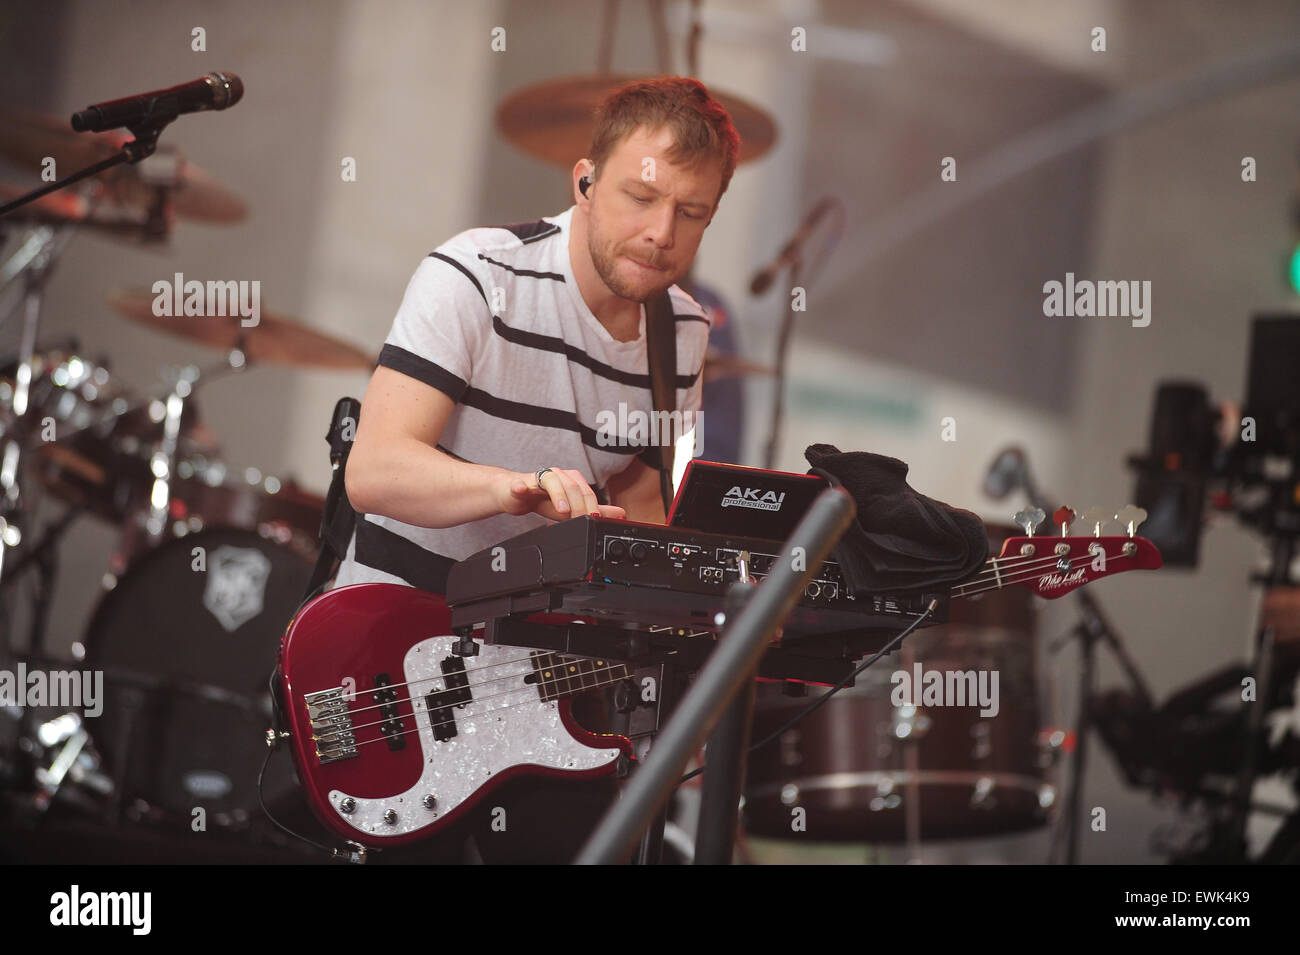 New York, NY. 26th June 2015. American band Imagine Dragons performs 'Radioactive' and 'Demons' - Stock Image